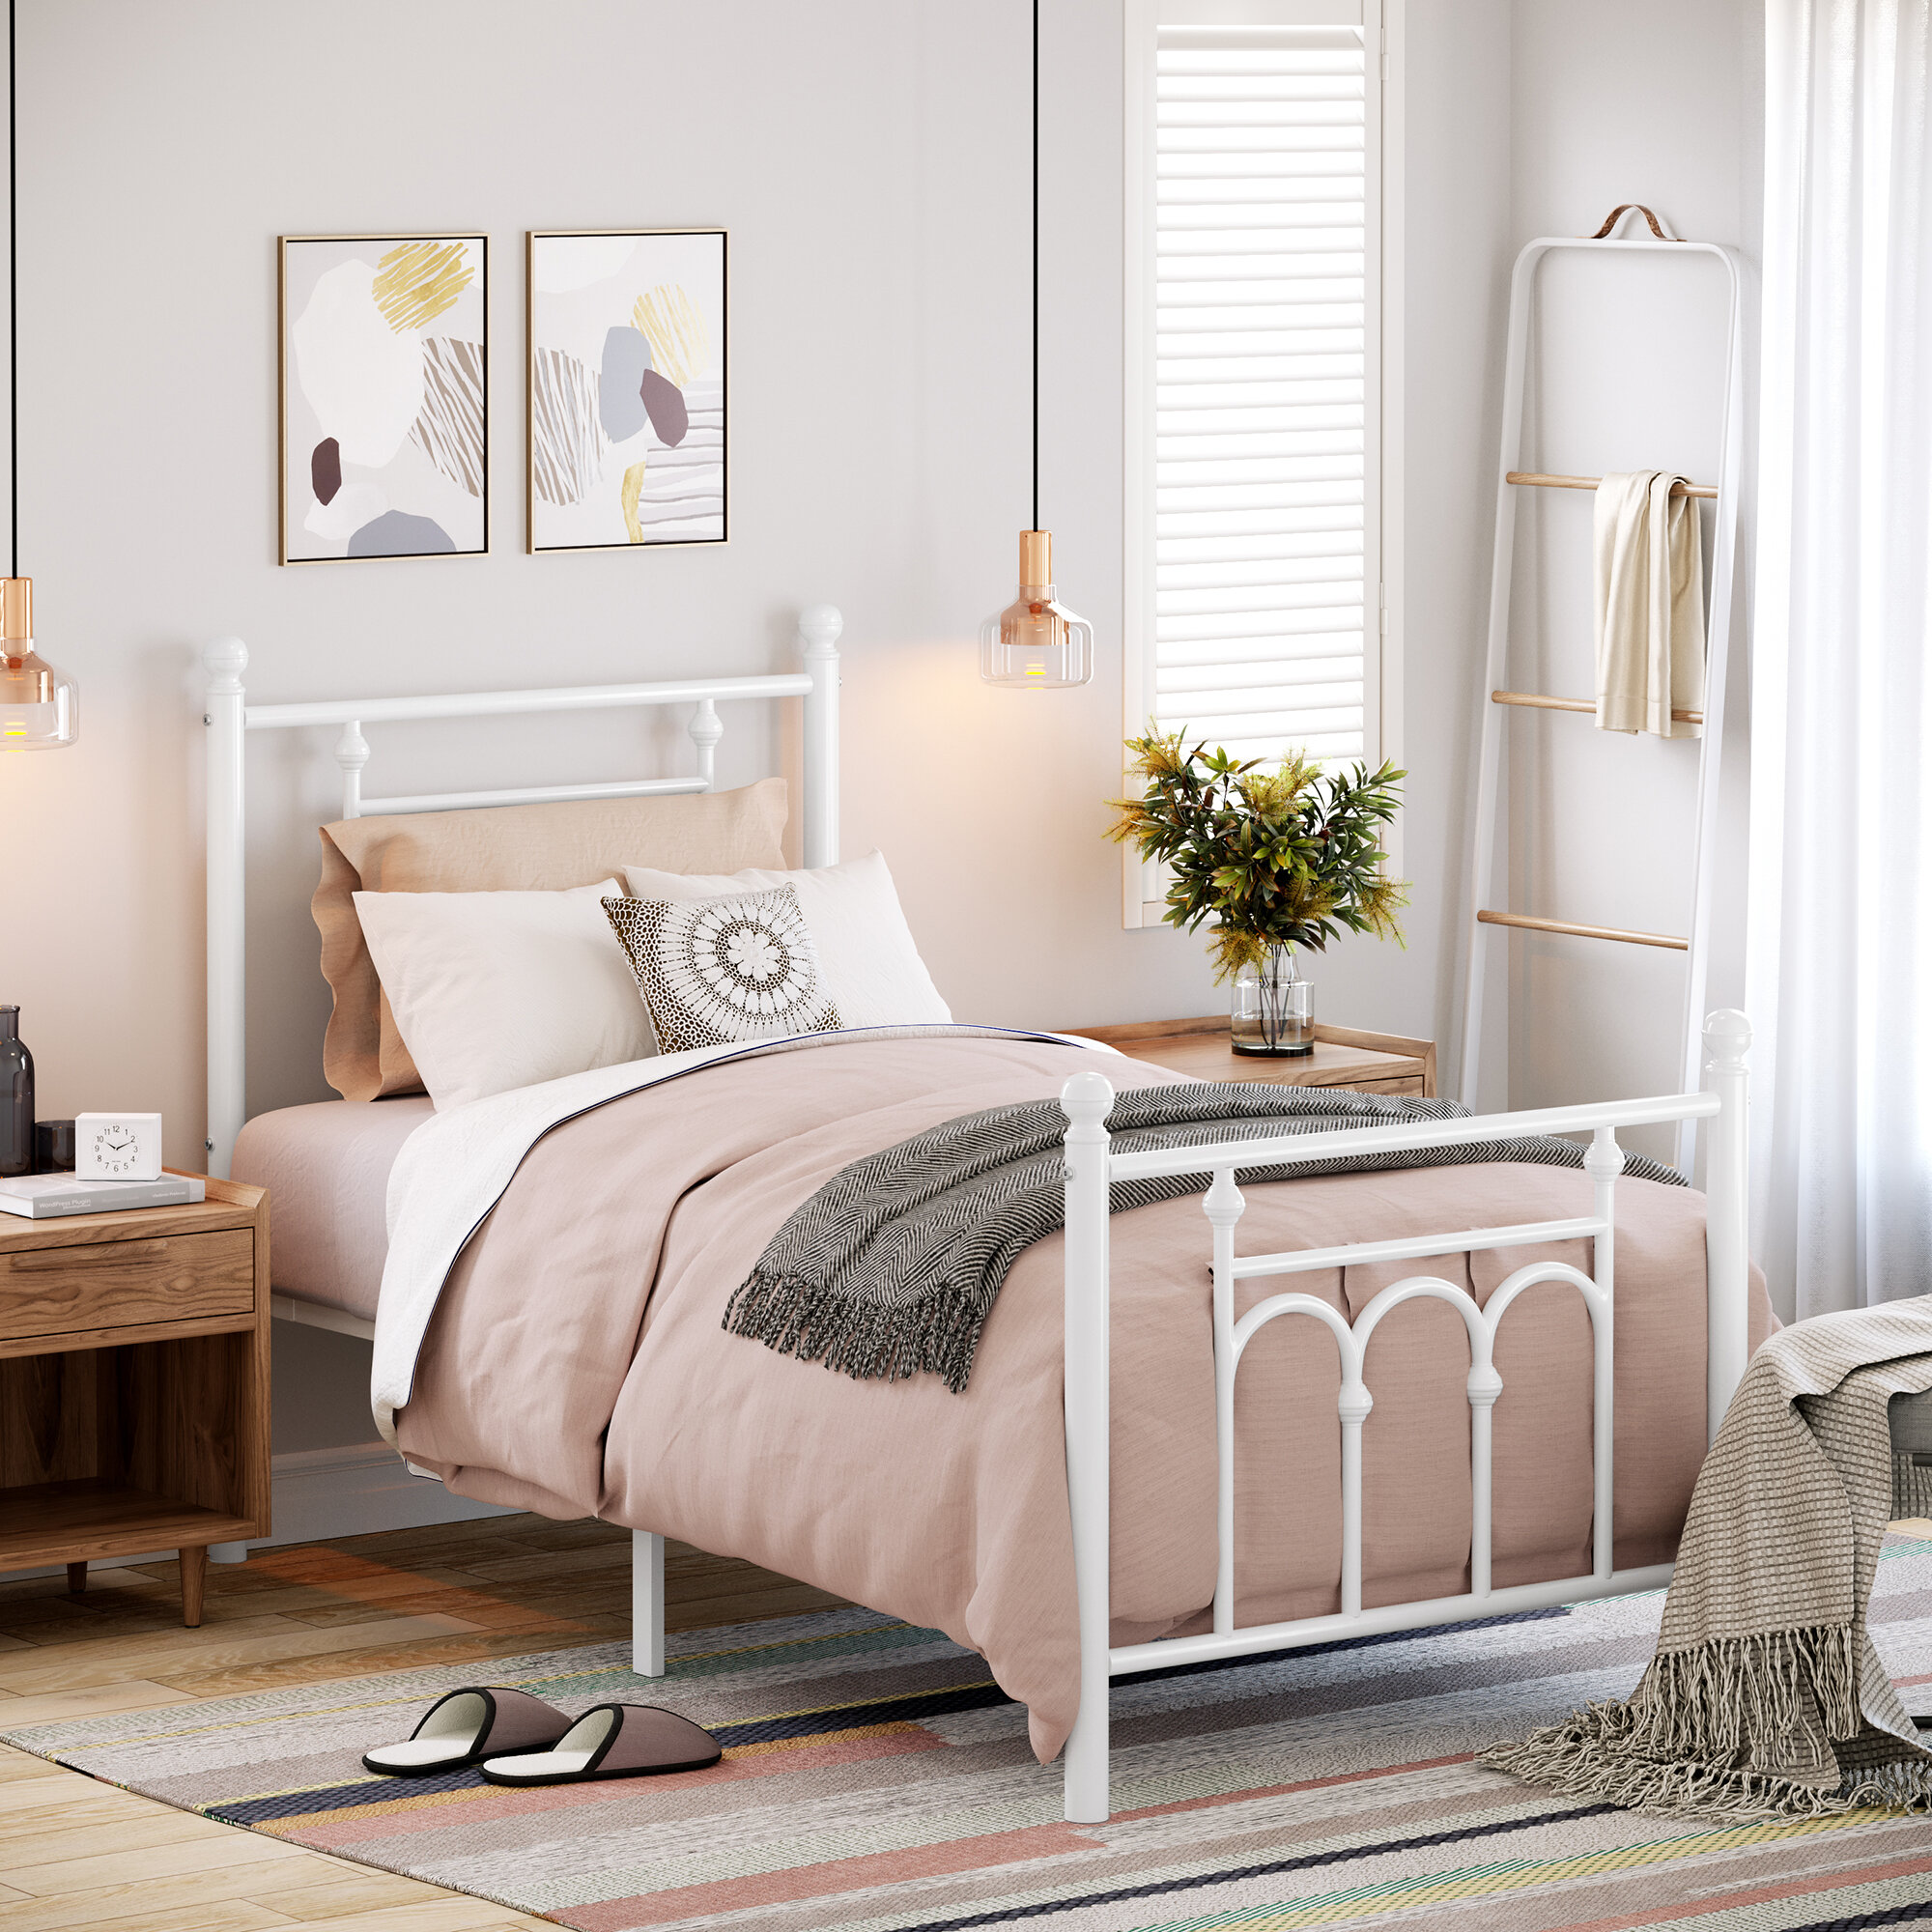 Winston Porter Twin Size Metal Bed Frame With Headboard Footboard No Box Spring Needed Platform Bed Under Bed Storage Victorian Vintage Style White A9d60158f24048059497dcffb0f7ce40 Reviews